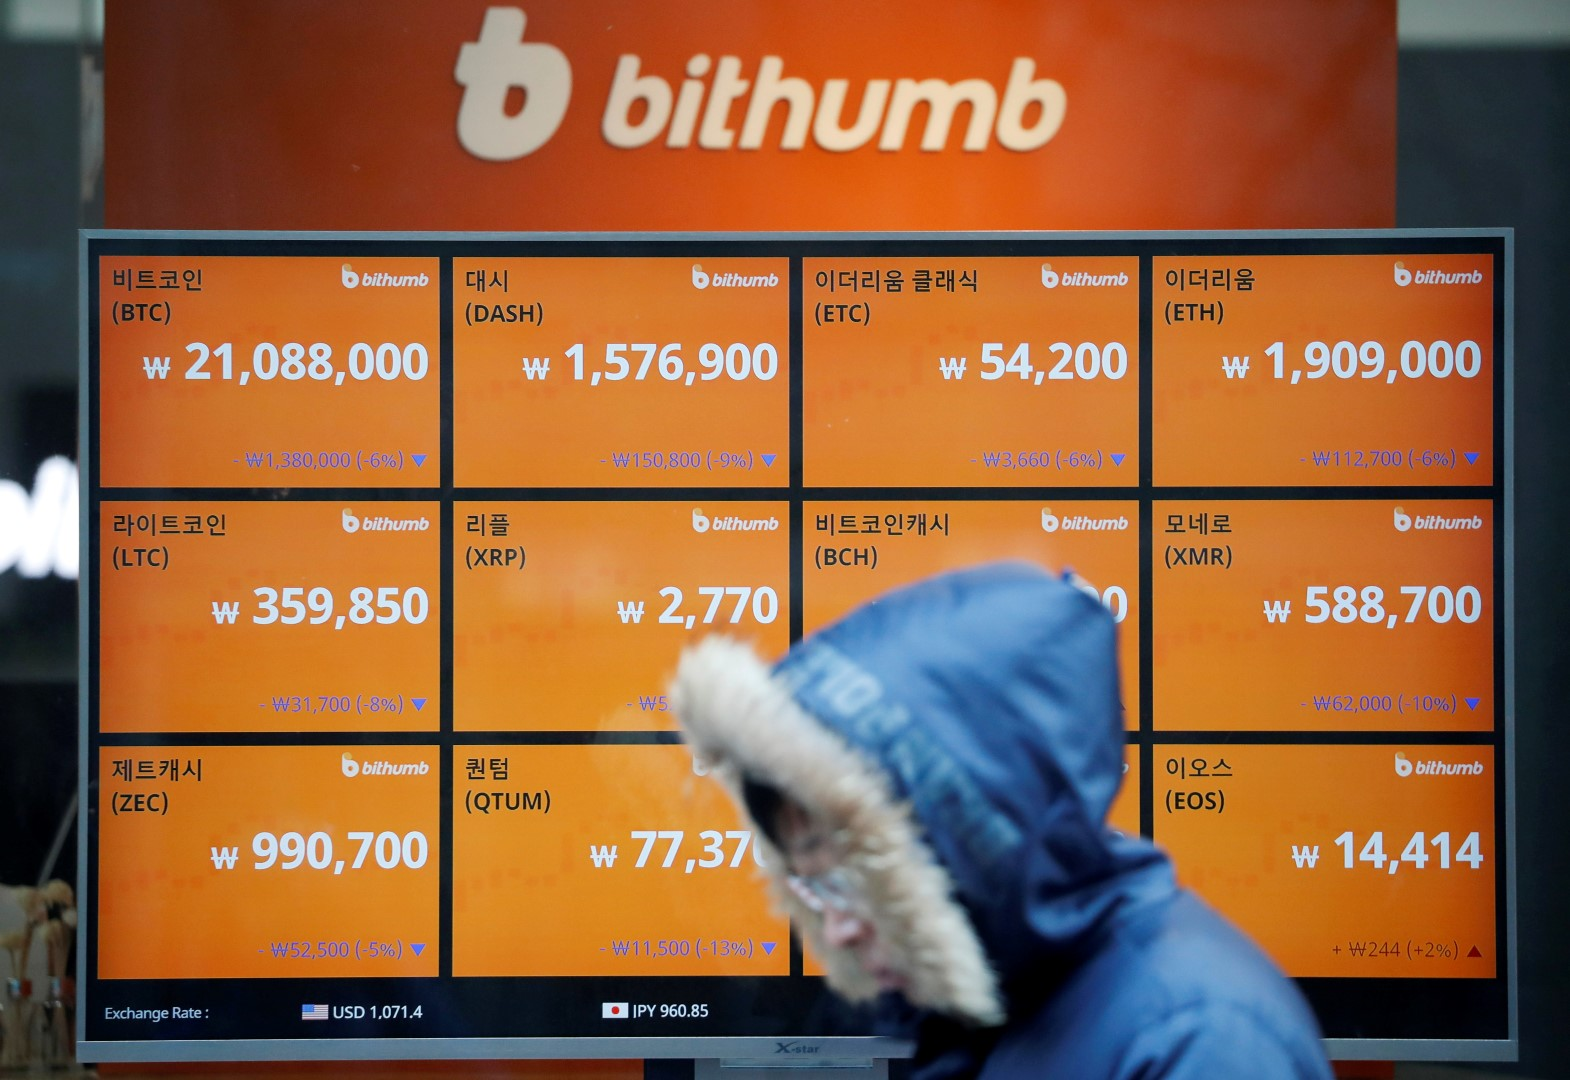 A man walks past an electric board showing exchange rates of various cryptocurrencies at Bithumb cryptocurrencies exchange in Seoul, South Korea, January 11, 2018. REUTERS/Kim Hong-Ji - RC1832348200